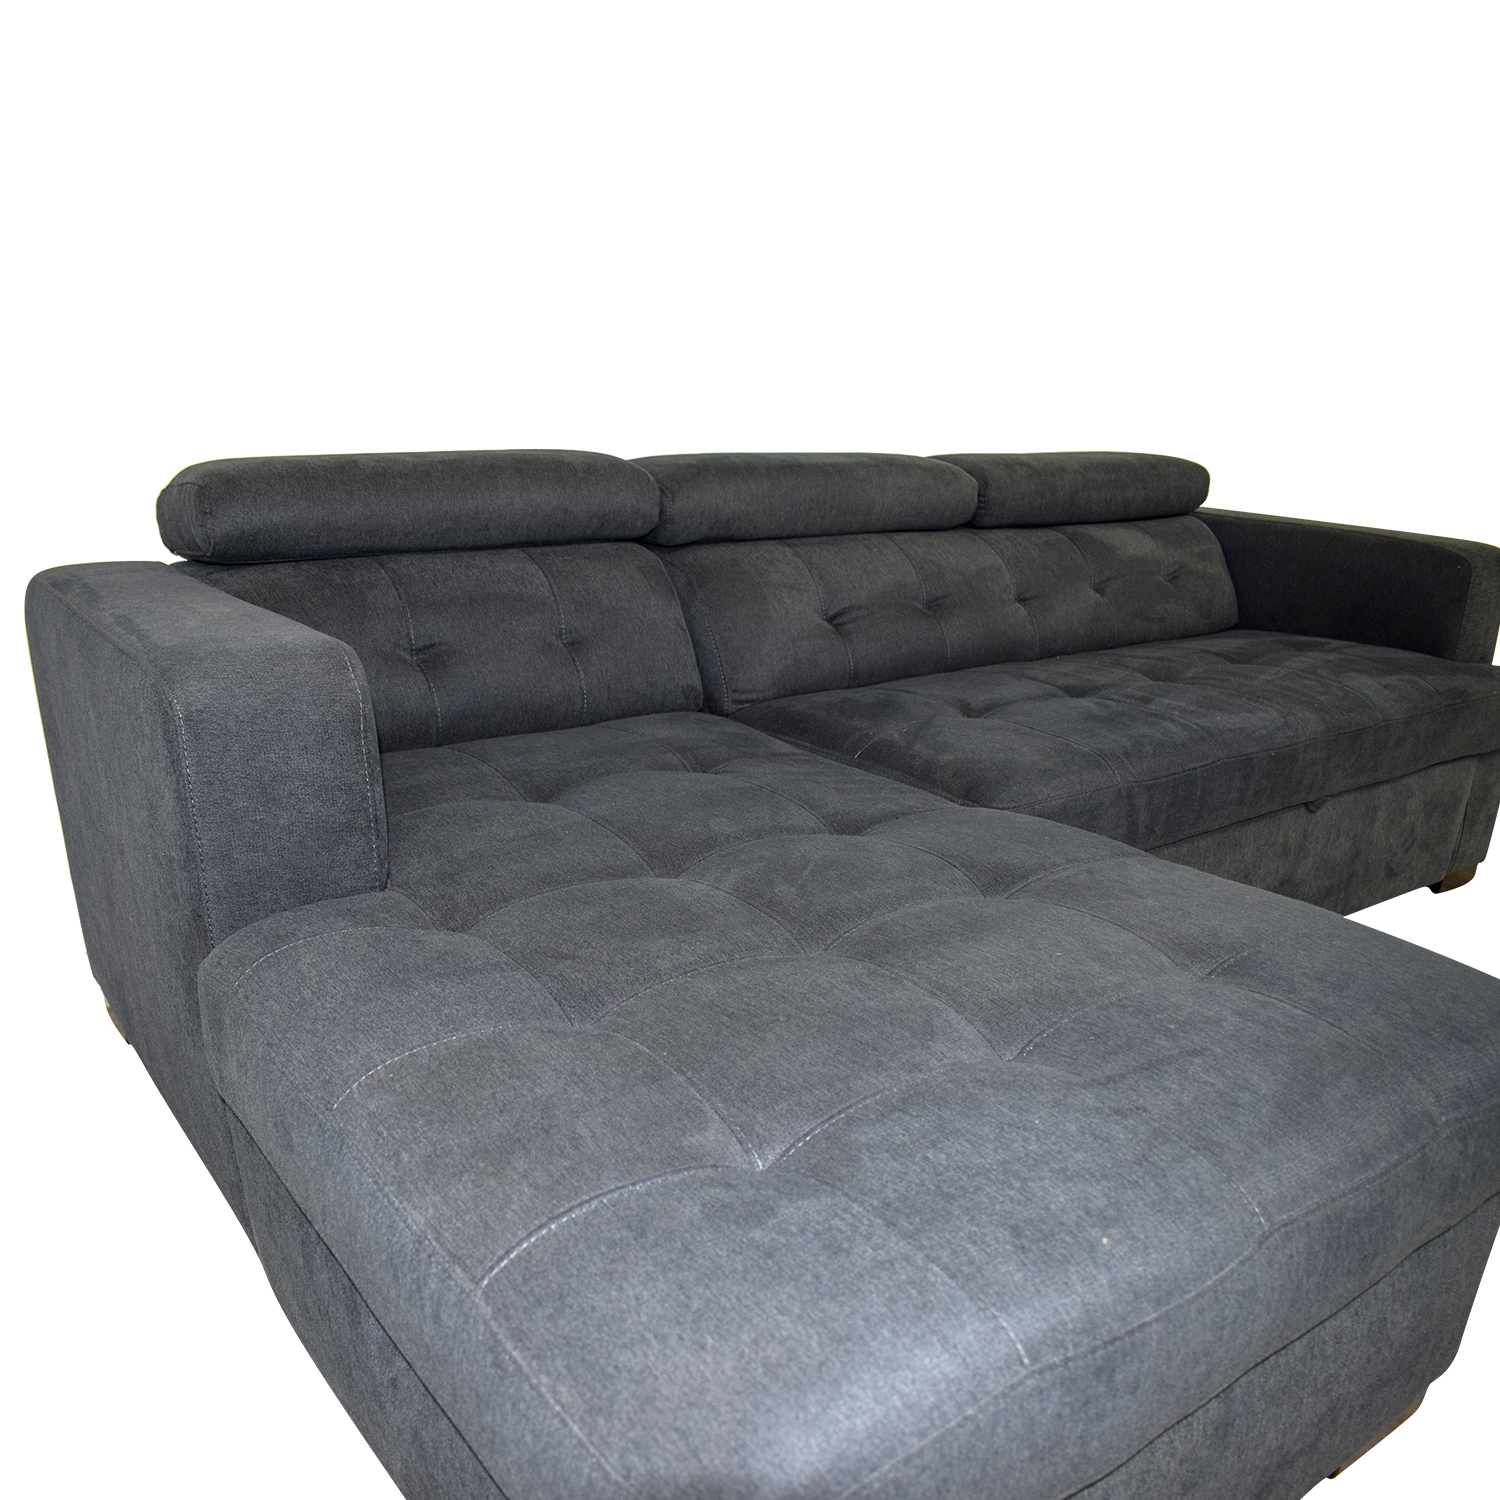 Playpen Playpen Navy Tufted Chaise Sectional nj